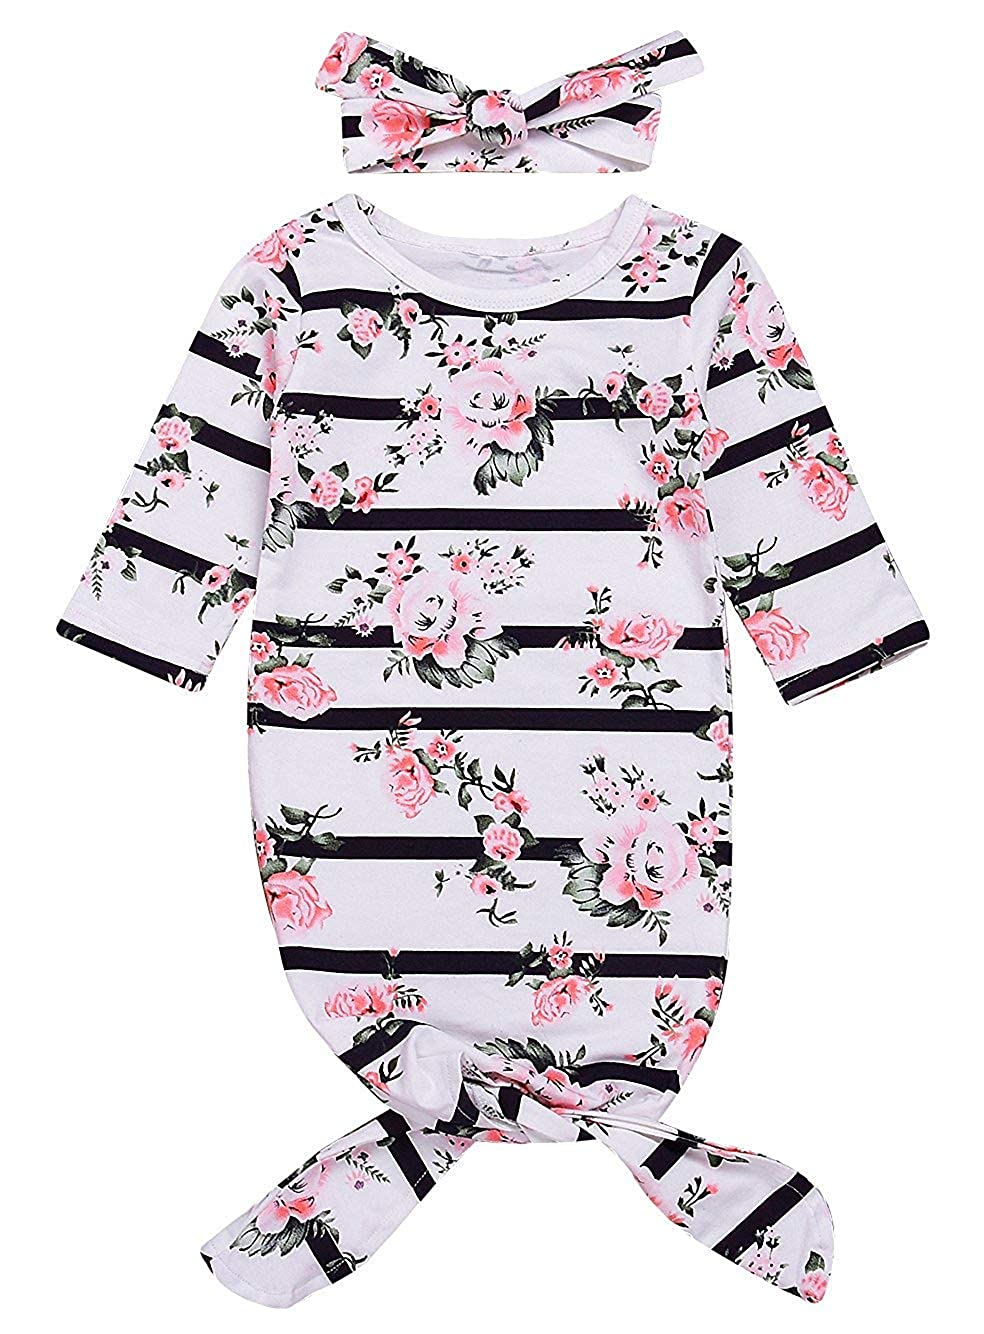 C& M Wodro Newborn Baby Sleepy Floral Striped Gown Headband Sleepwear Romper Sleeping Bags 0-6 Months)